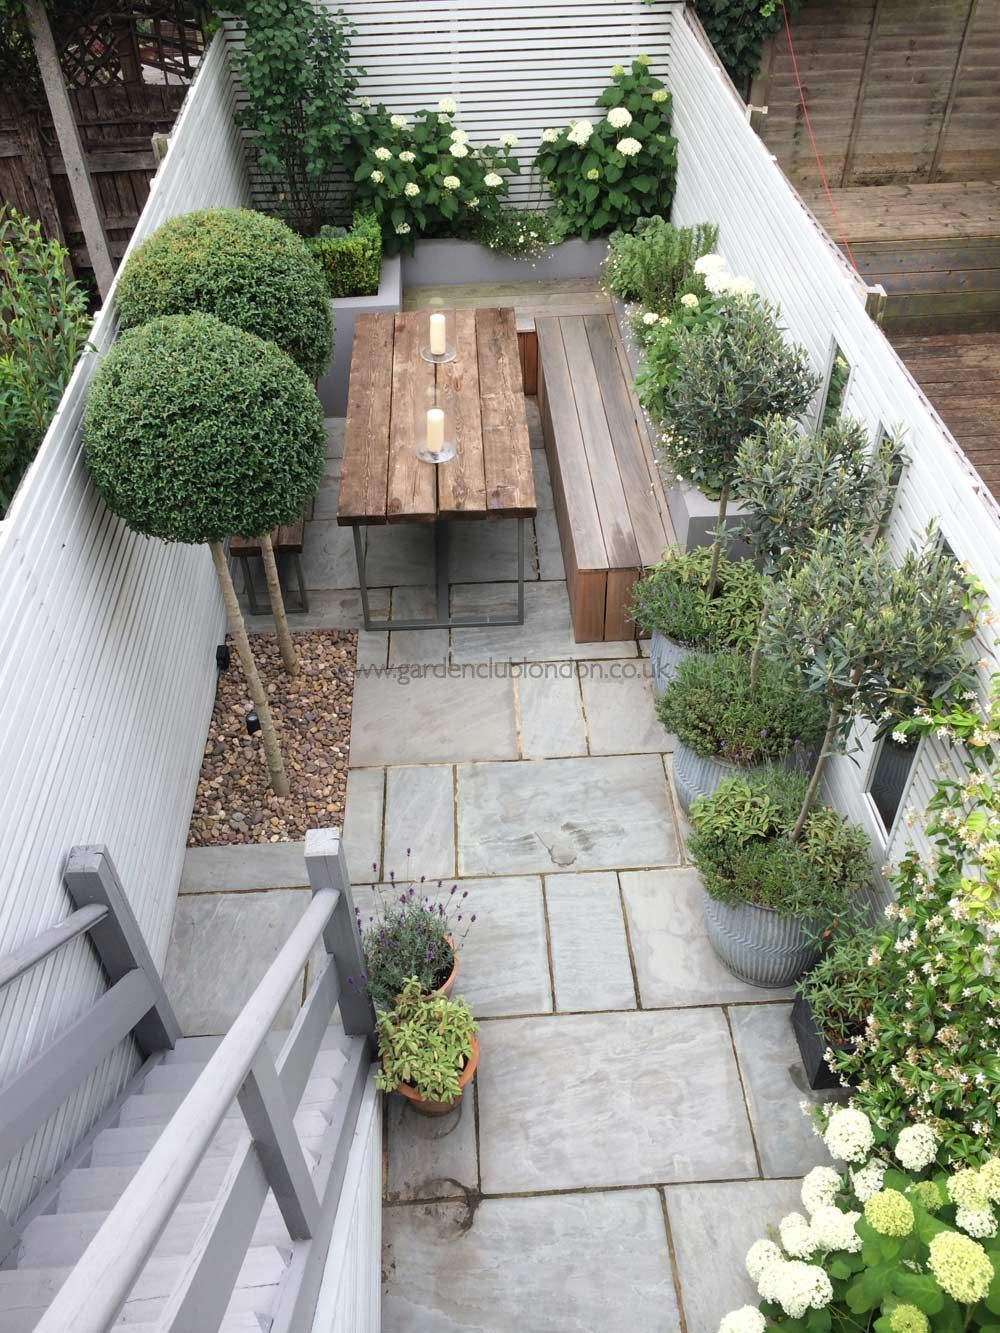 Slim Rear Contemporary Garden Design London  Small backyard